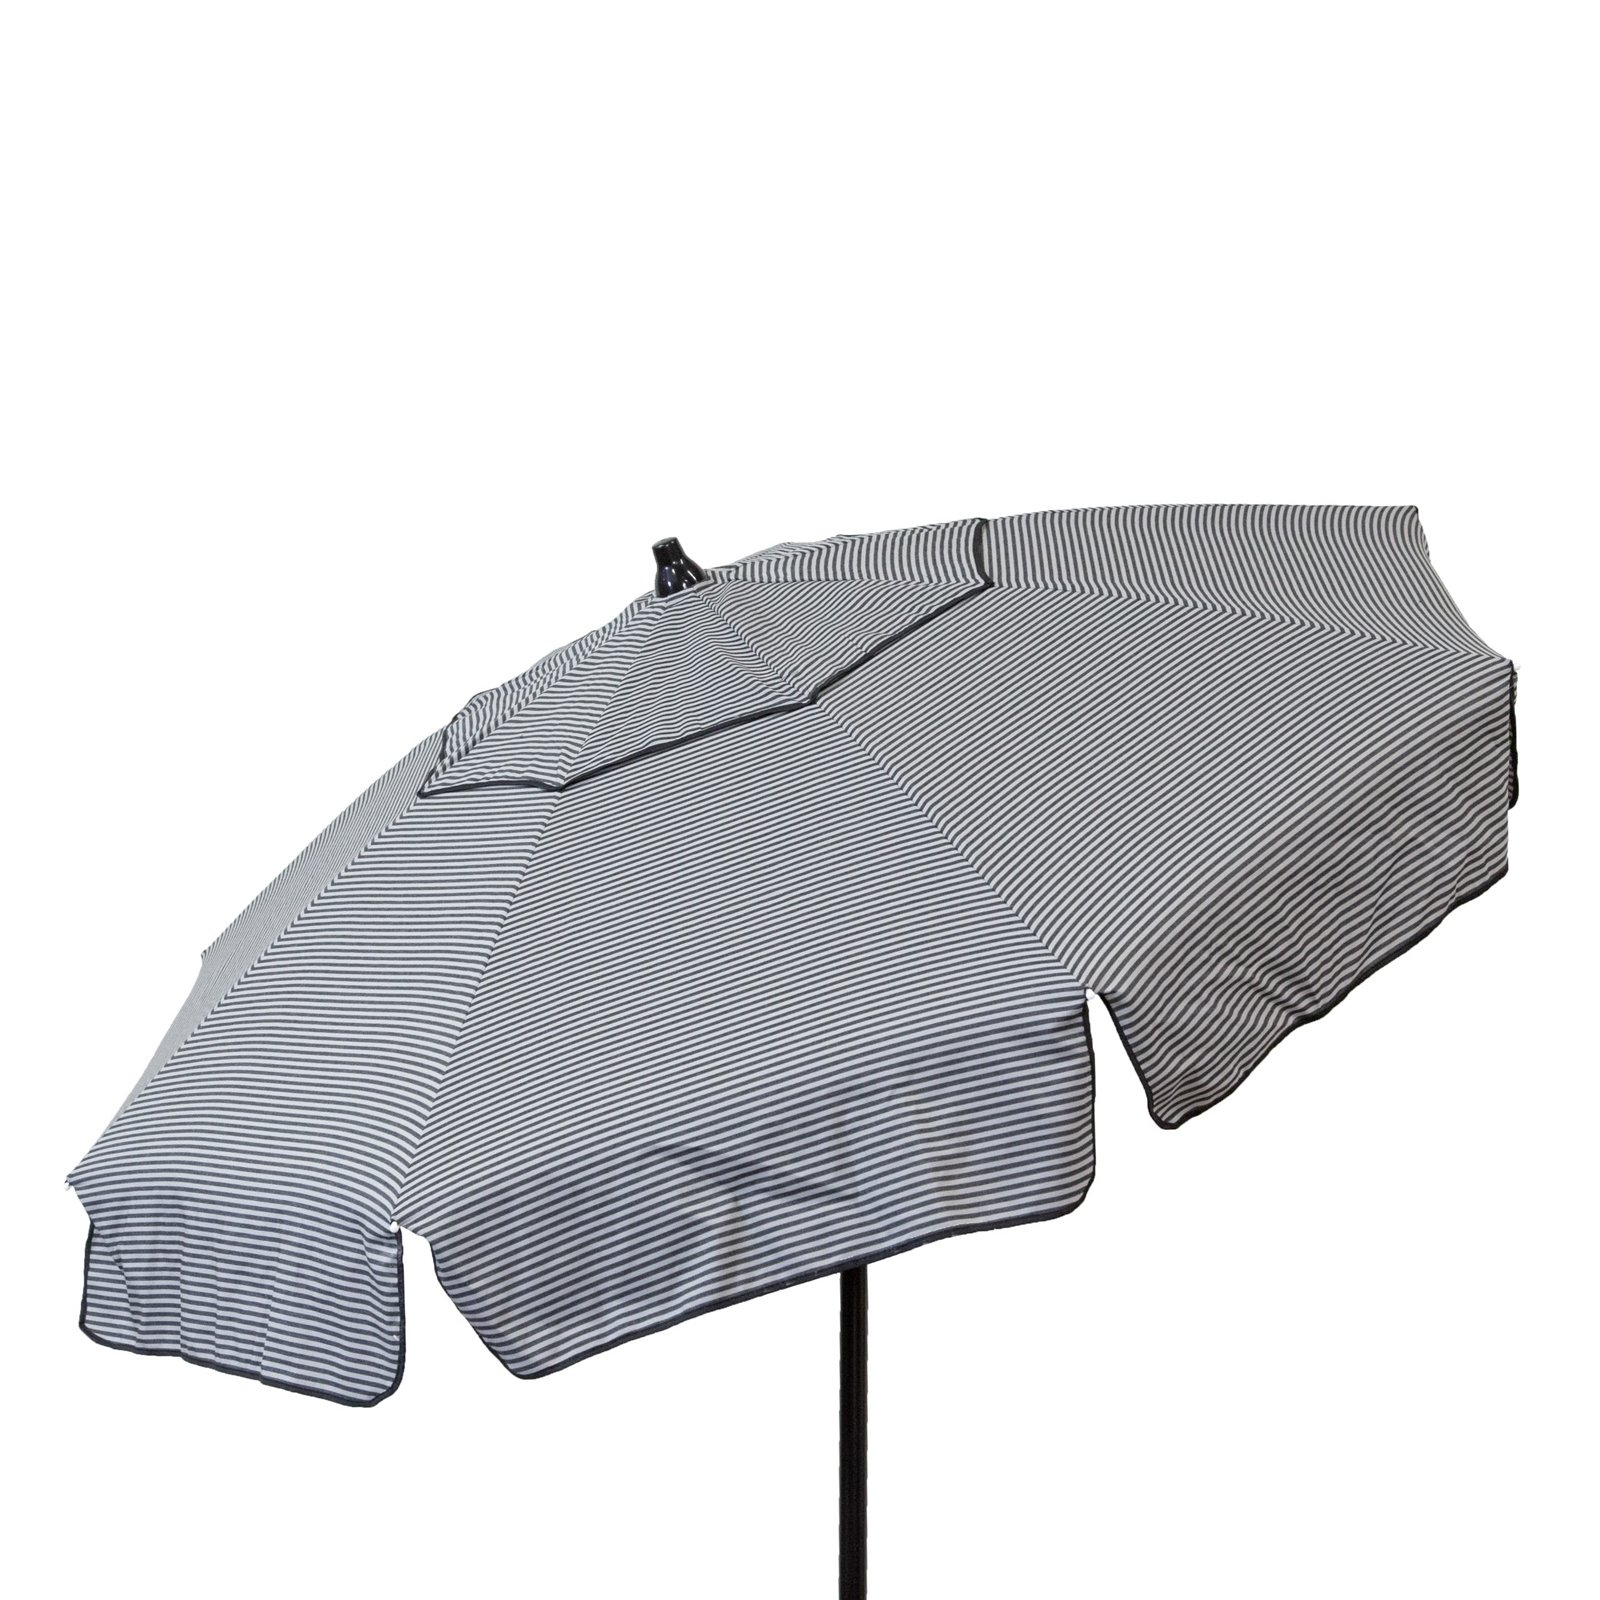 Euro 6 foot Umbrella Acrylic Stripes Grey and Black - Beach Pole